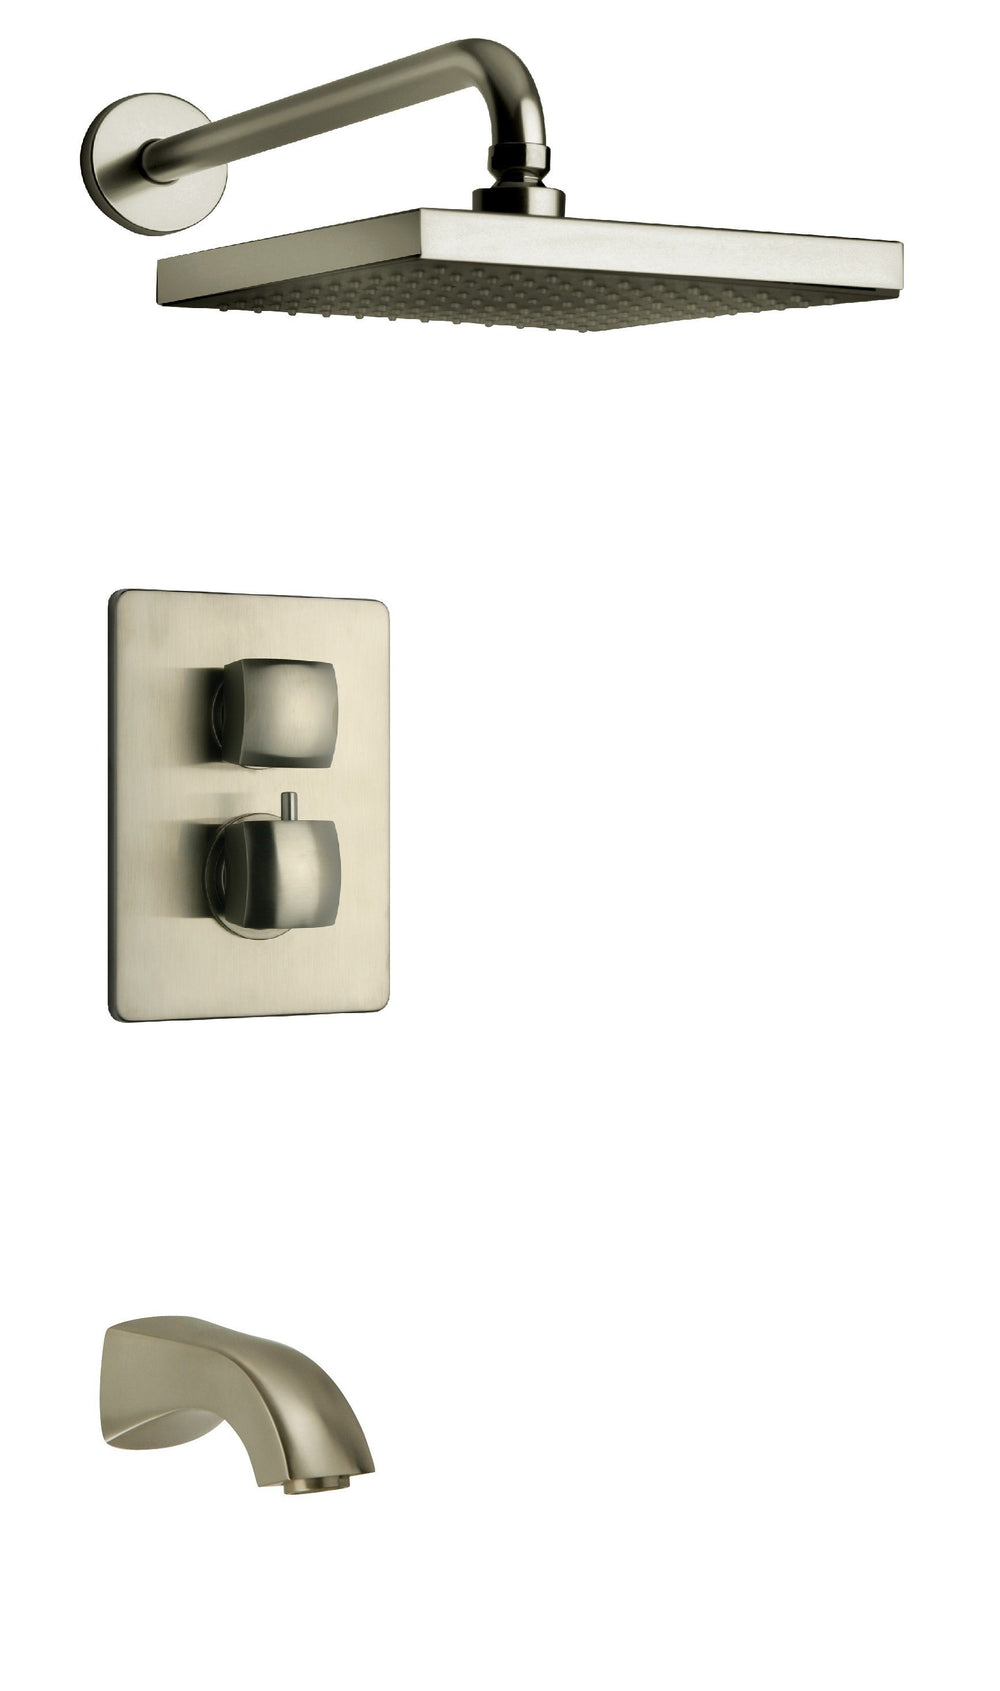 Latoscana Lady Thermostatic Valve With 2 Way Diverter Brushed Nickel bathtub and showerhead faucet systems Latoscana